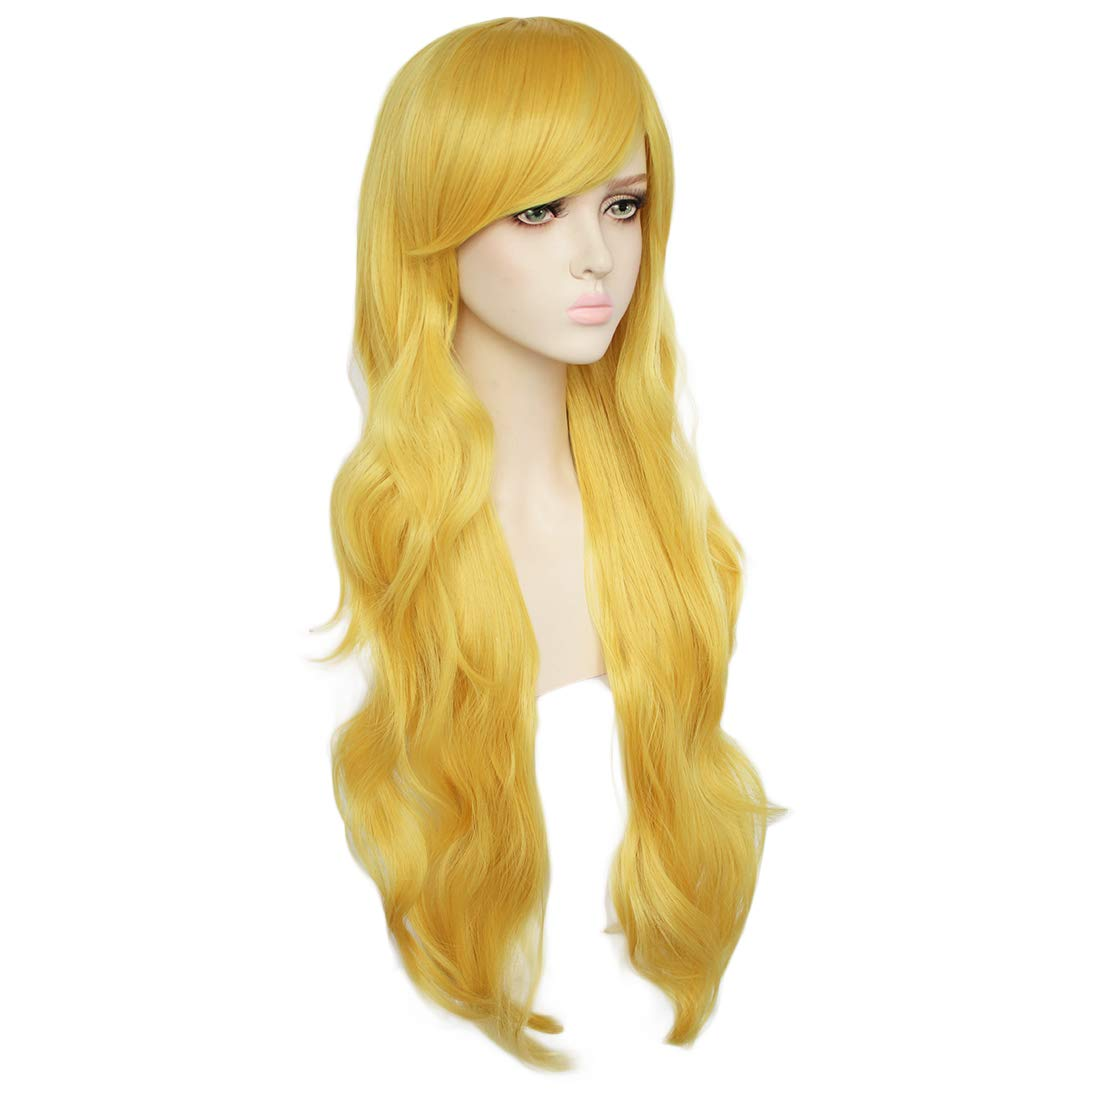 Amazon.com : JoneTing Long Yellow Wig Cosplay